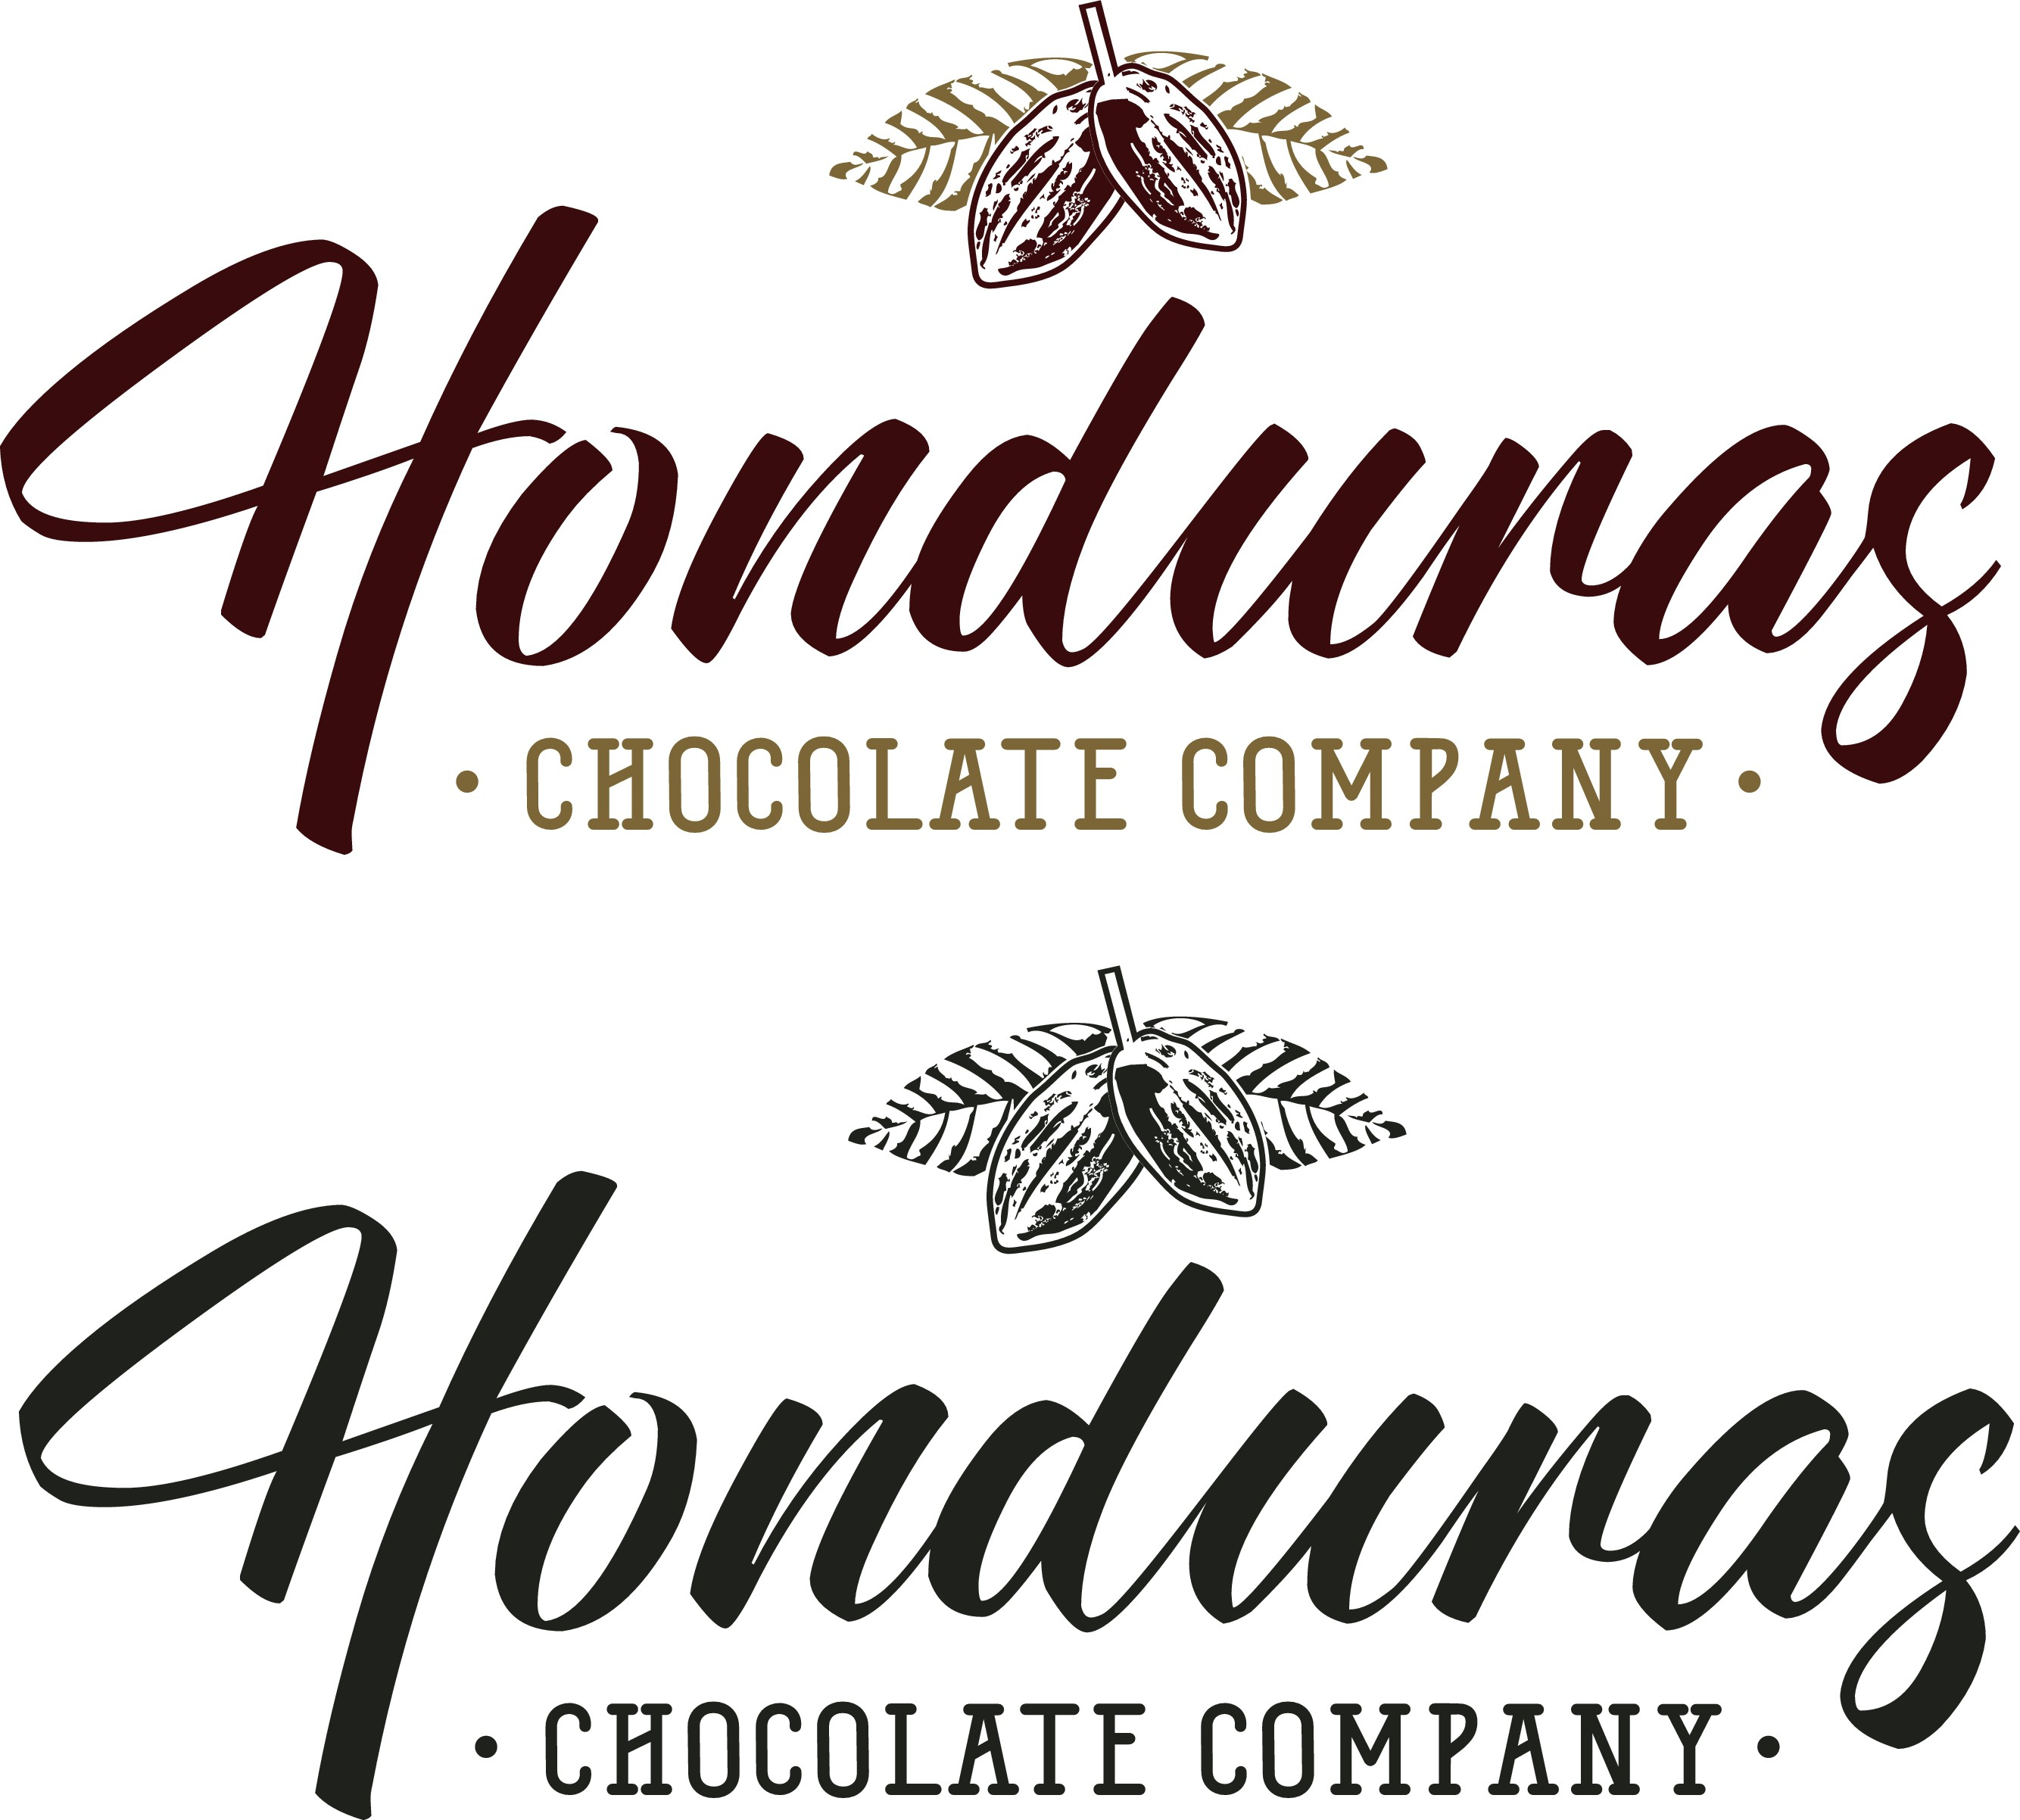 Artisan chocolate maker needs logo to go to market